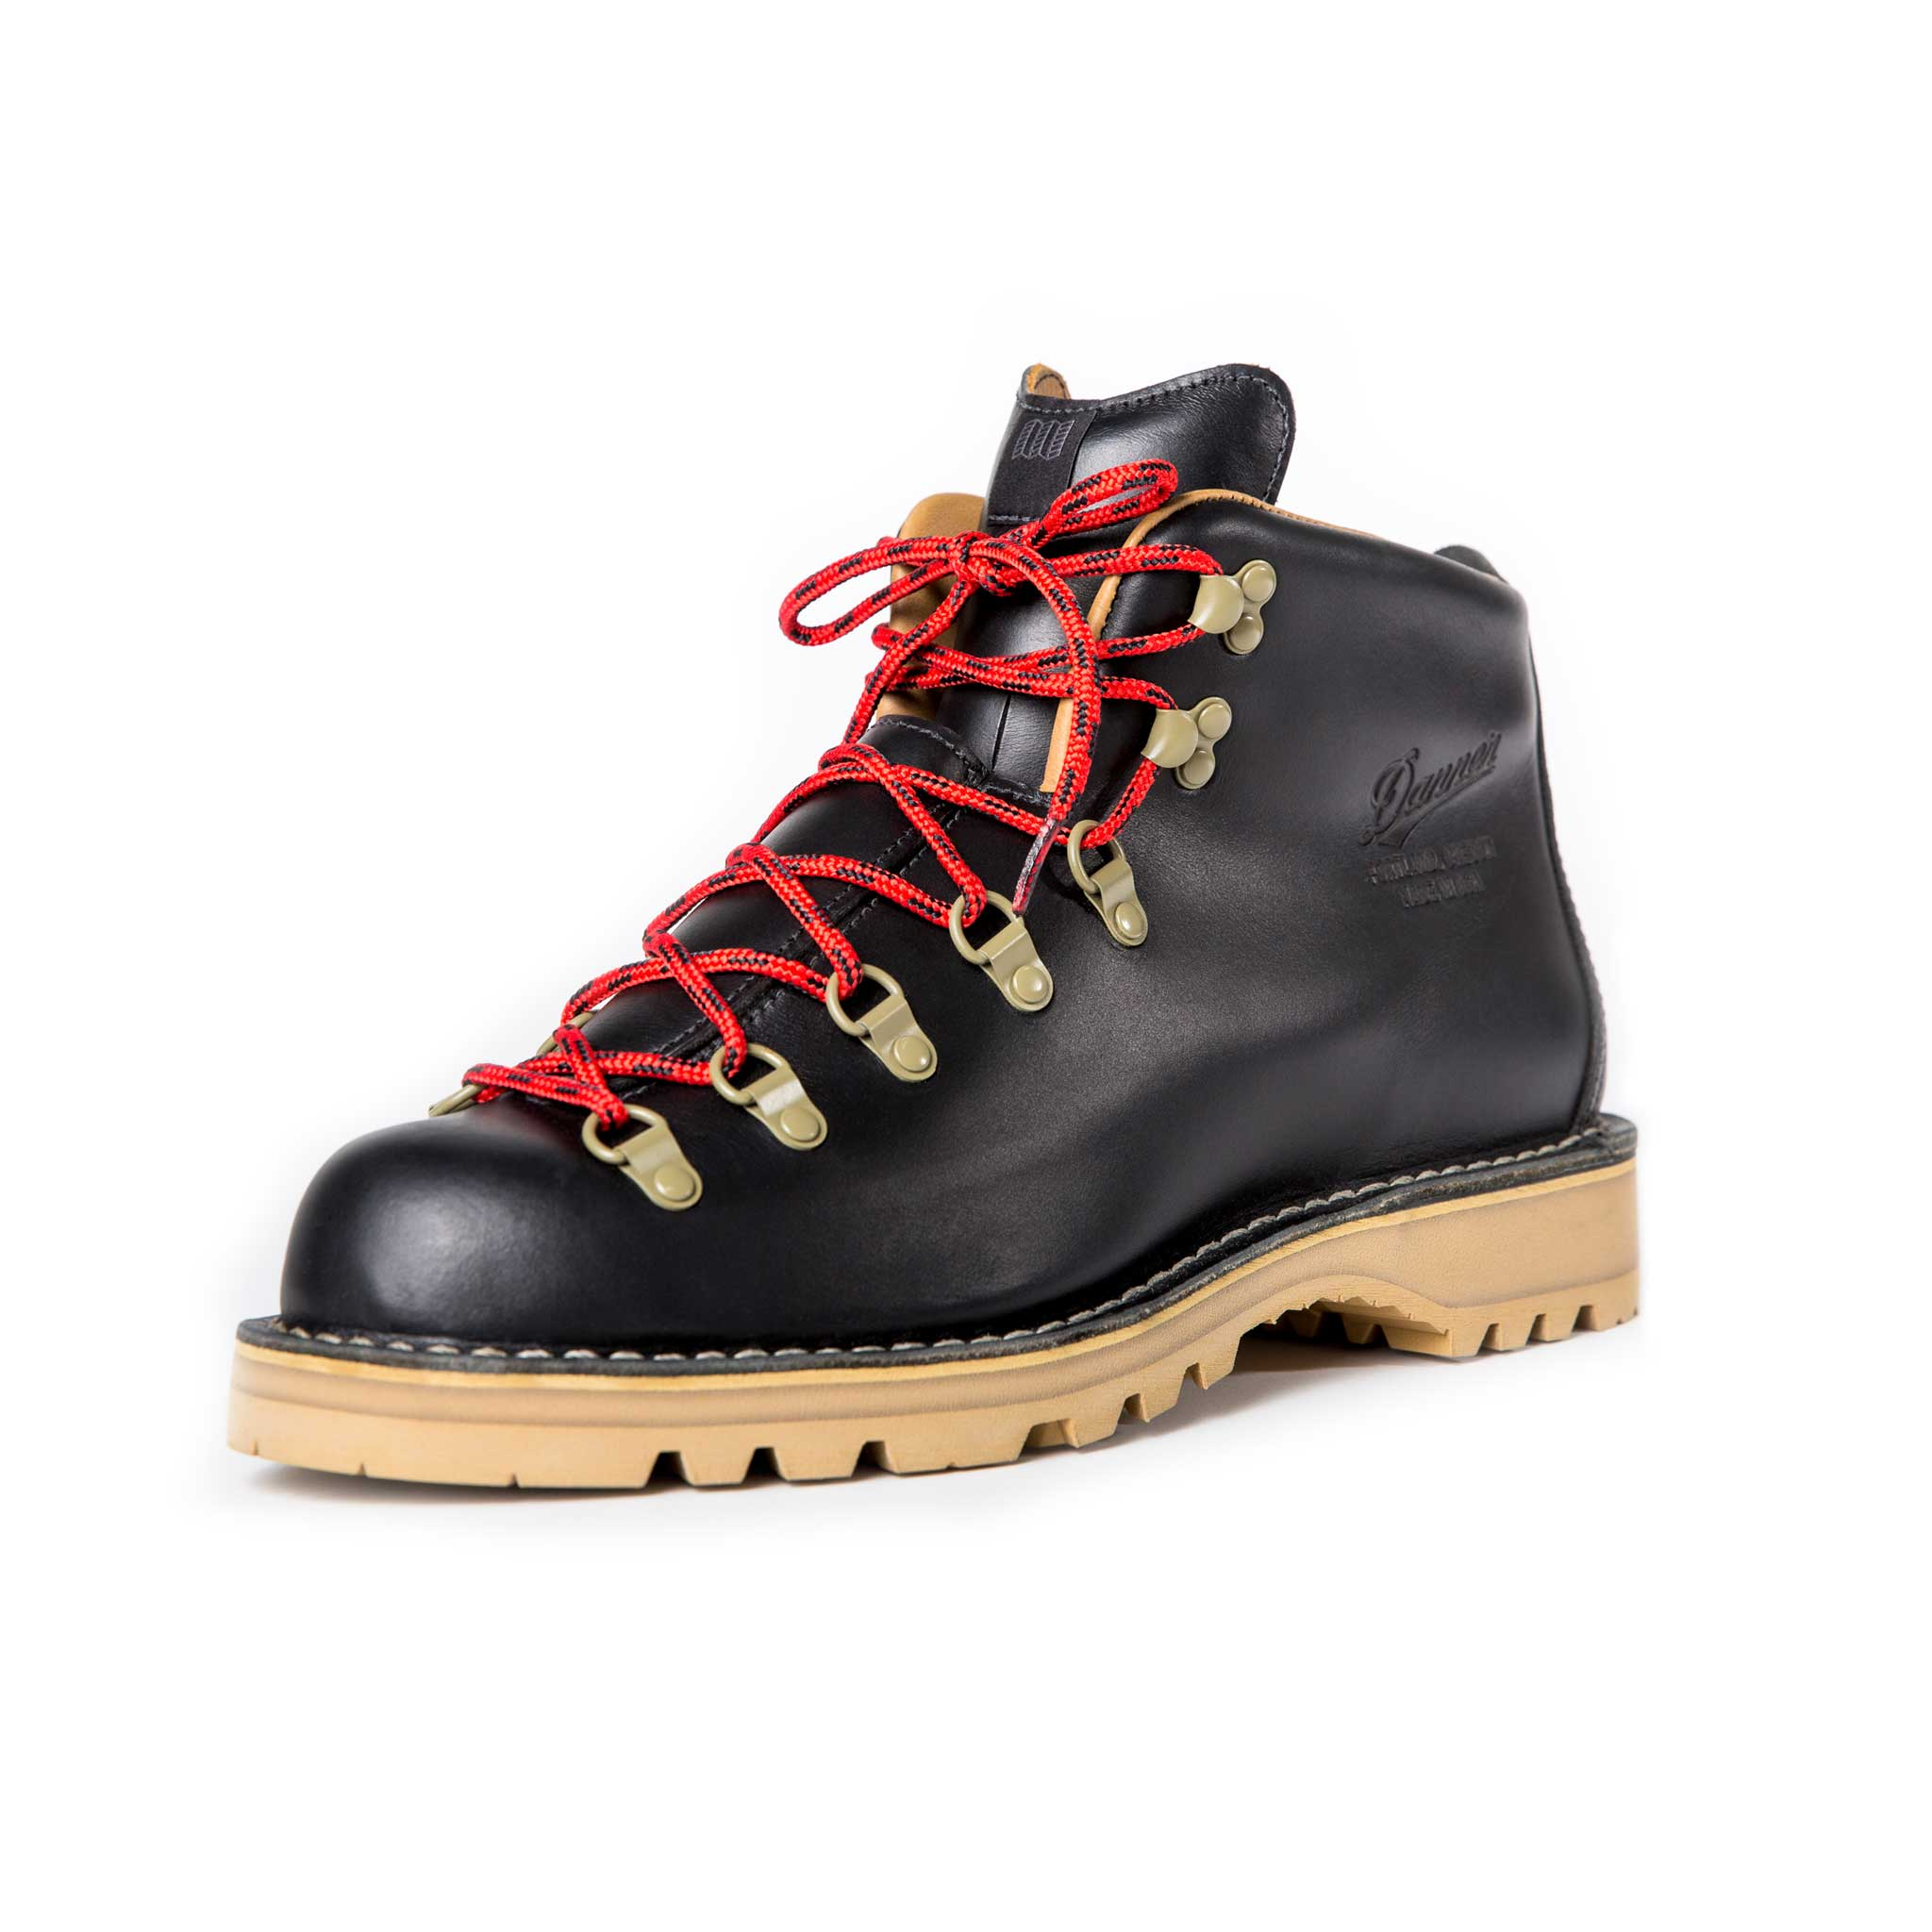 fe6edae9cf7 Topo Designs x Danner Mountain Light Boot | Made in USA